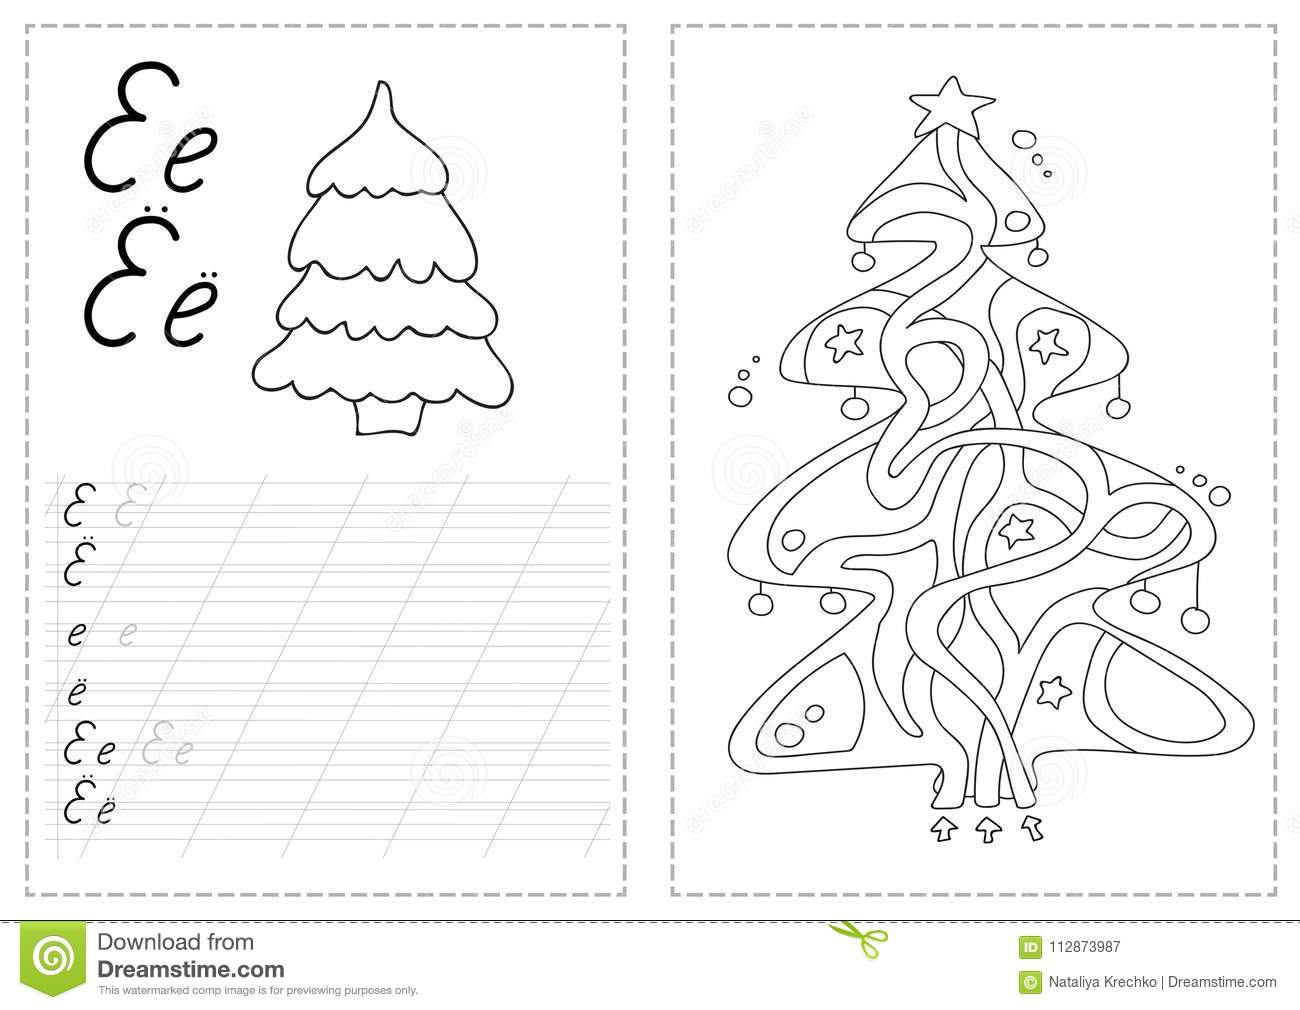 alphabet letters tracing worksheet with russian alphabet letters christmas tree stock vector. Black Bedroom Furniture Sets. Home Design Ideas